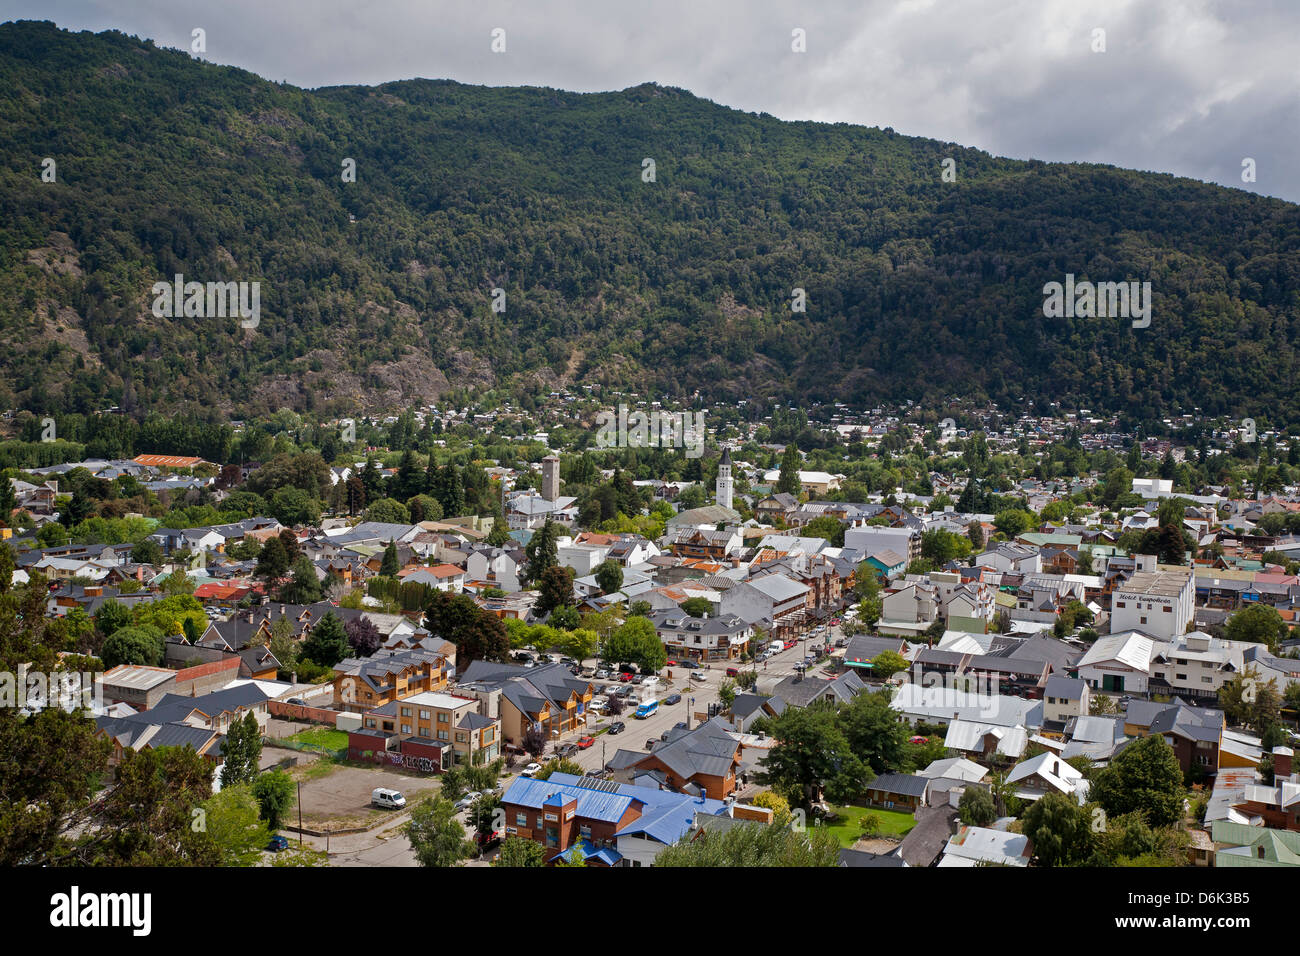 View over San Martin de Los Andes, Patagonia, Argentina, South America - Stock Image